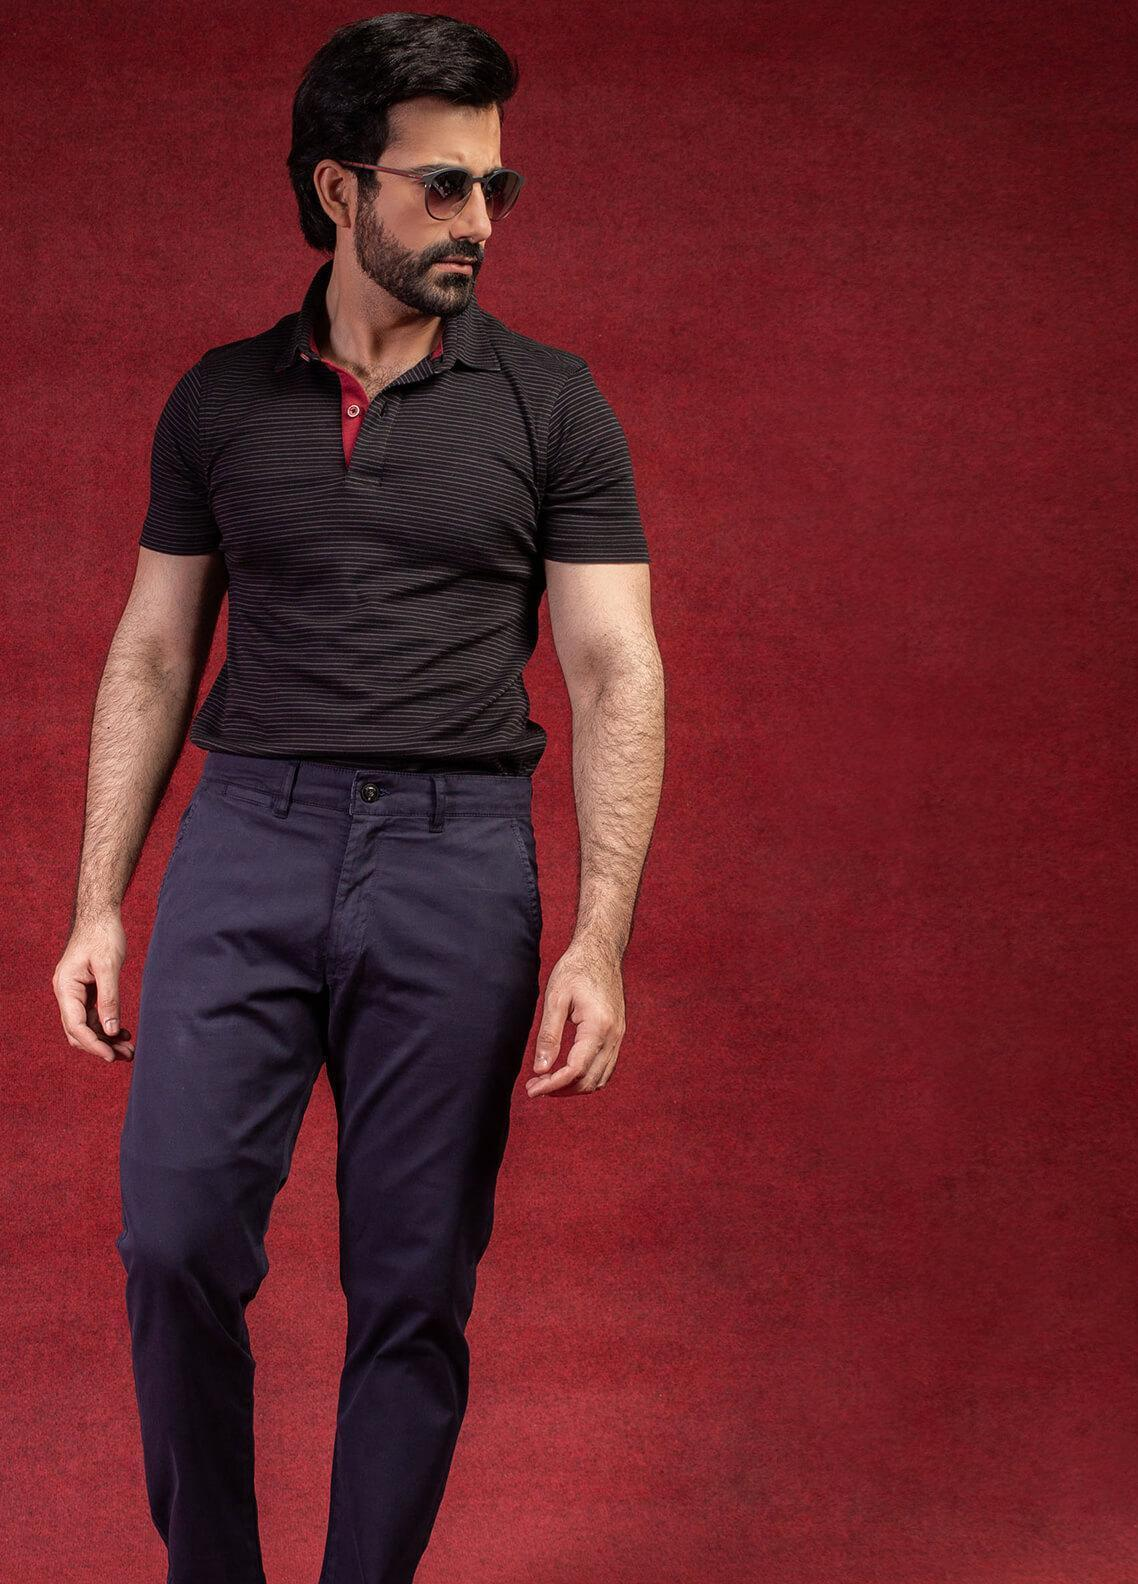 Brumano Cotton Polo Shirts for Men - Black BRM-41-0095